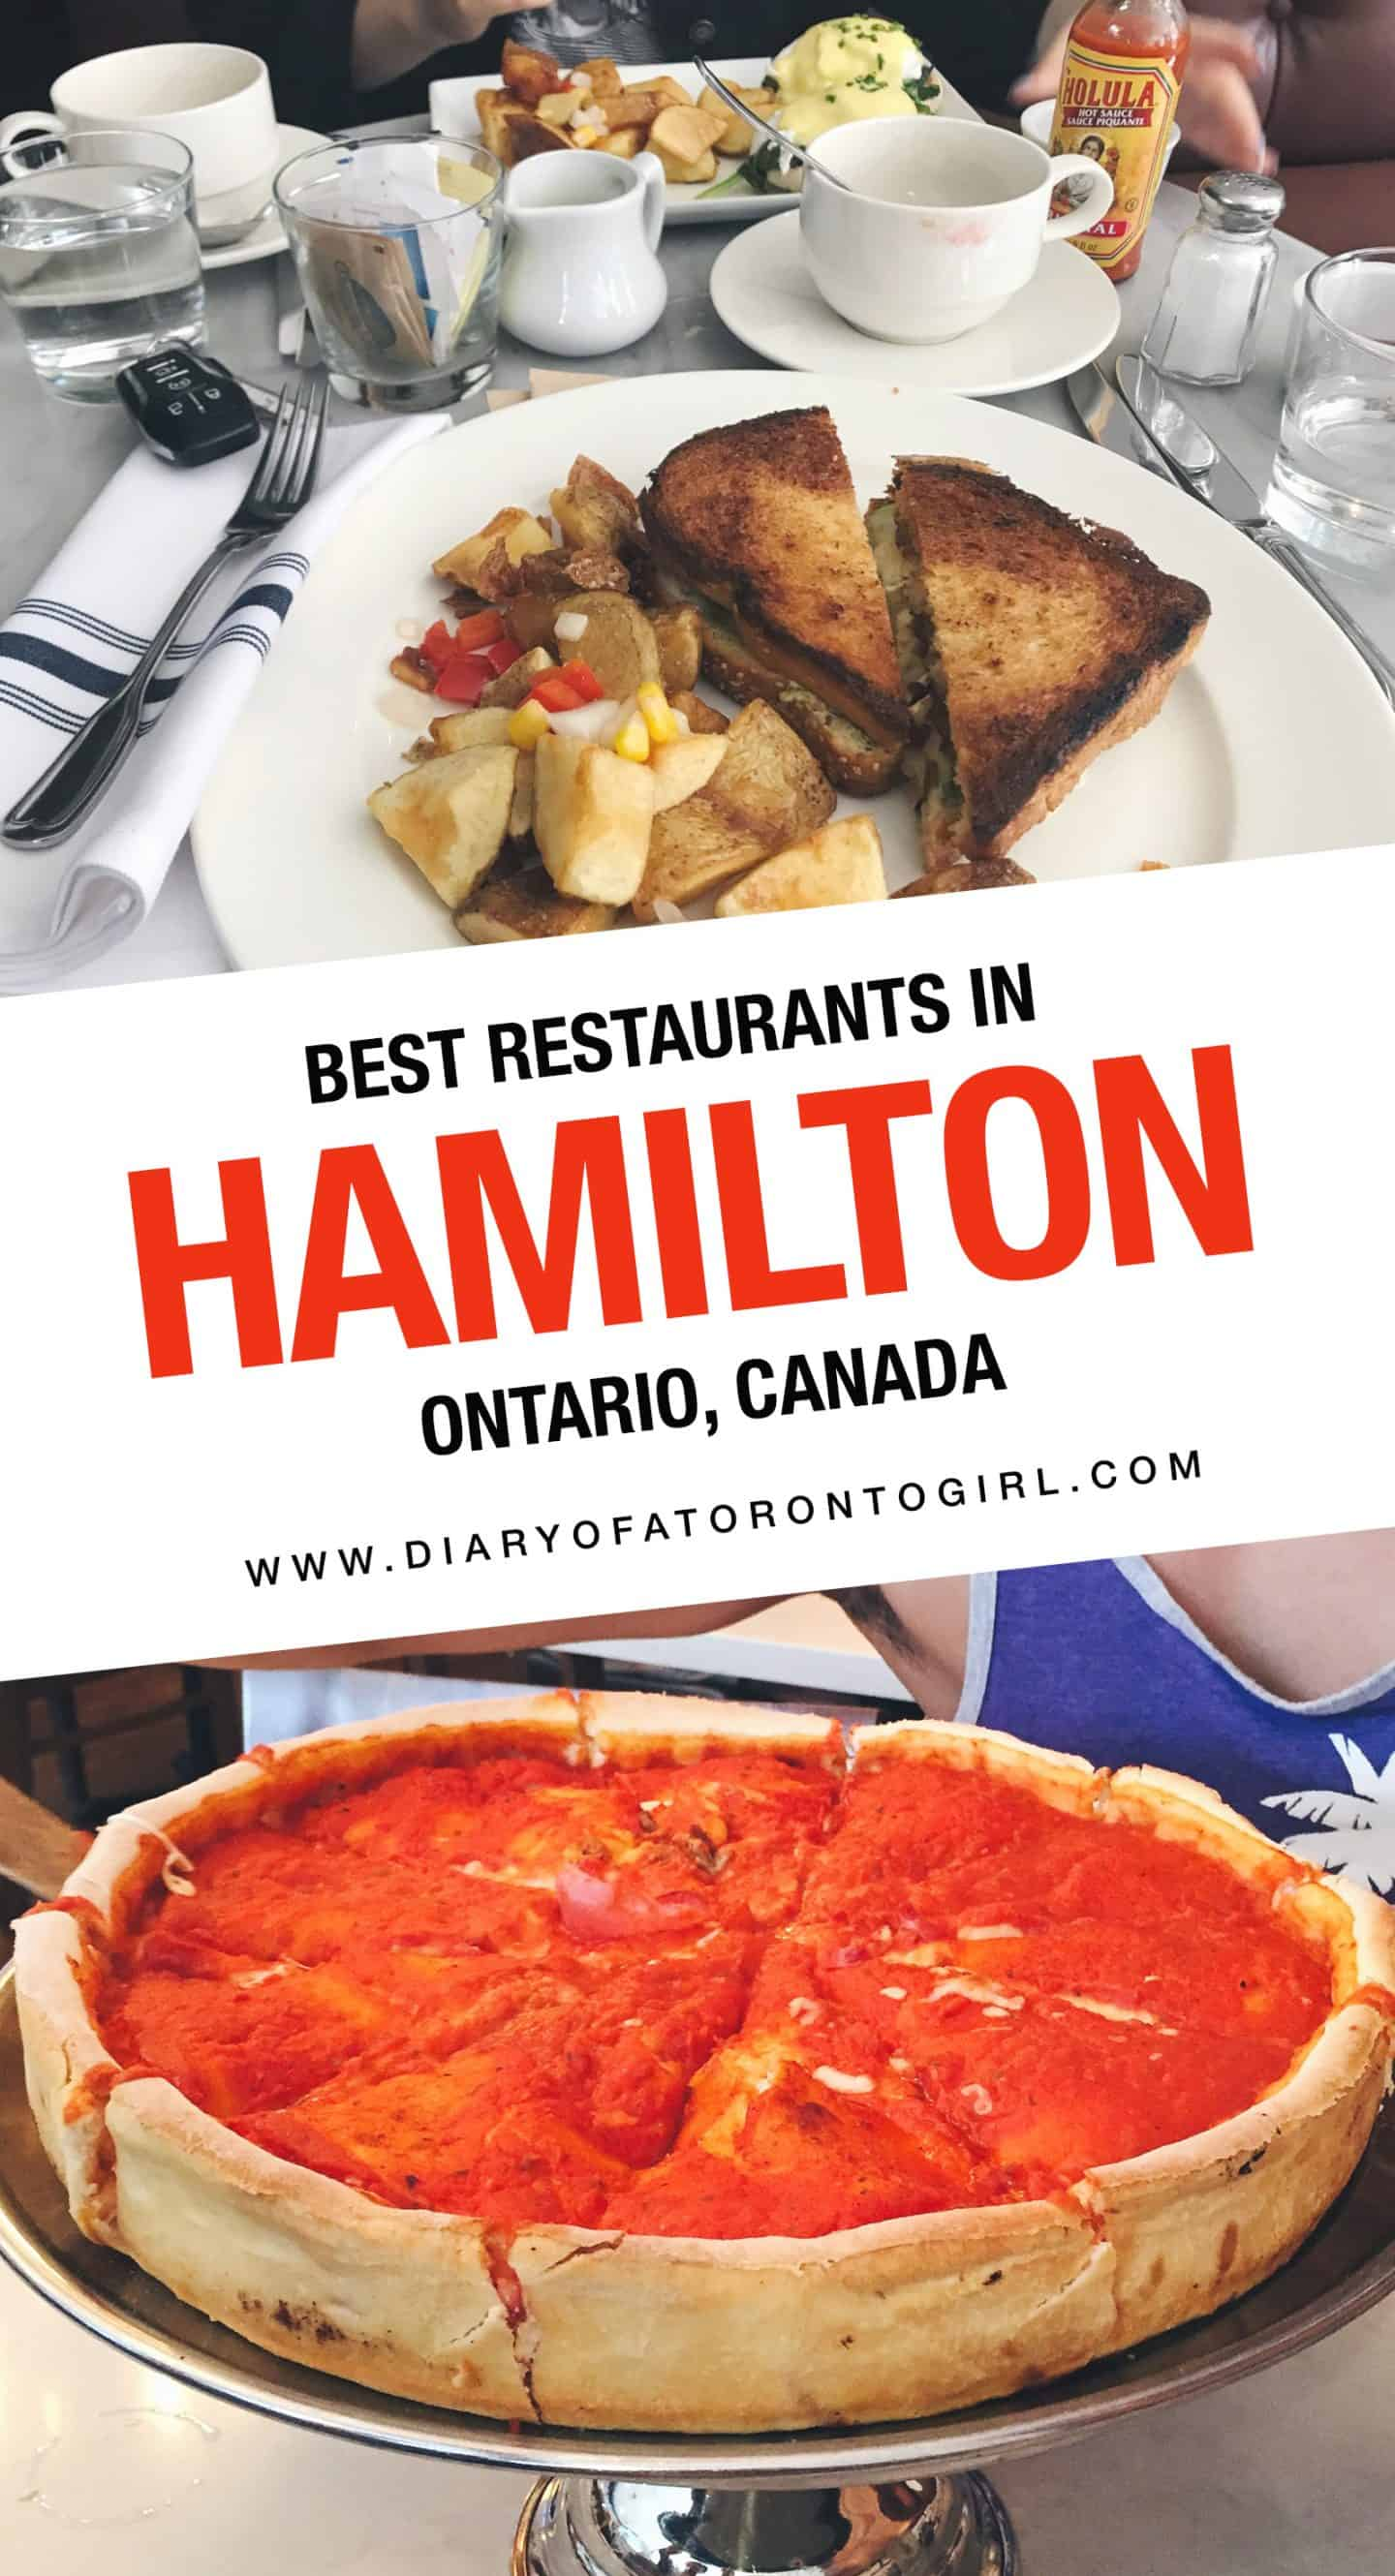 Looking for the best restaurants to eat at in Hamilton? Here are some of the top food spots to visit in Hamilton, Ontario!